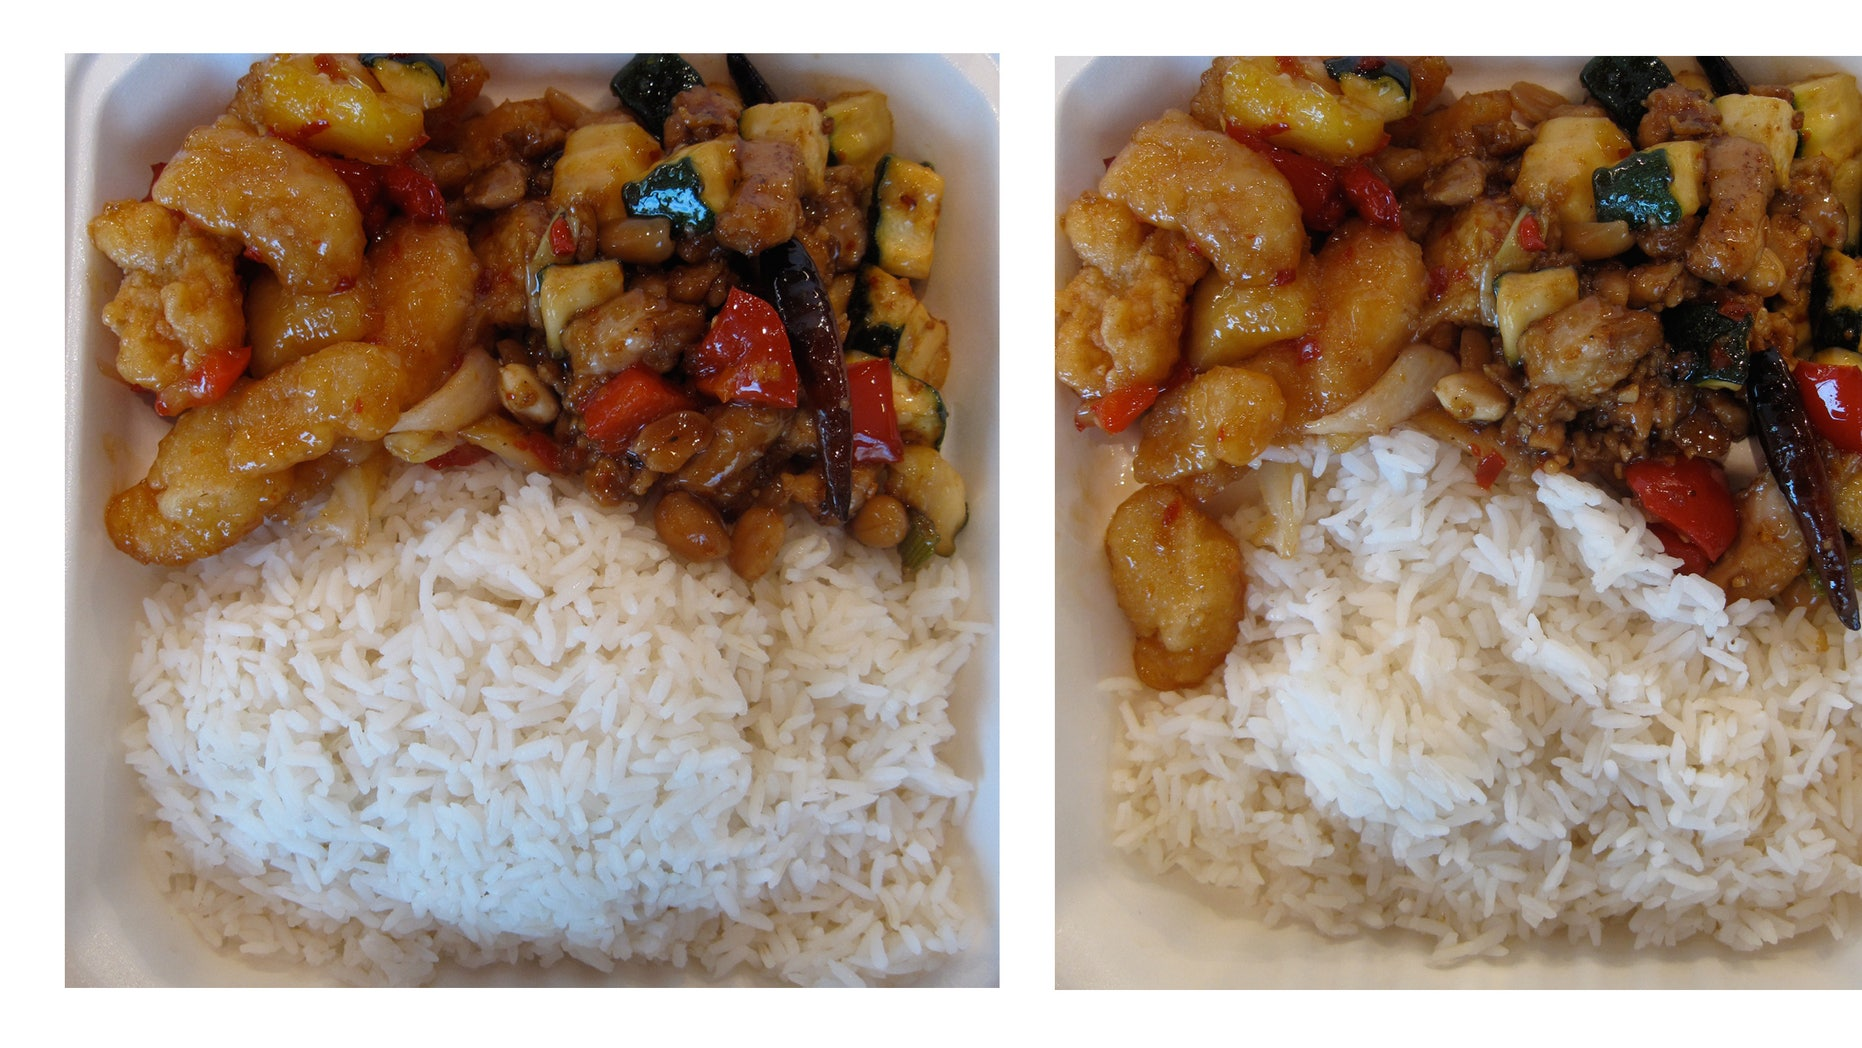 This two-picture combo shows the same meal, but the photo at left shows a full serving of rice and the other a half serving of rice. (AP Photo/Aline Michelle Grüneisen, Center for Advanced Hindsight, Duke University)